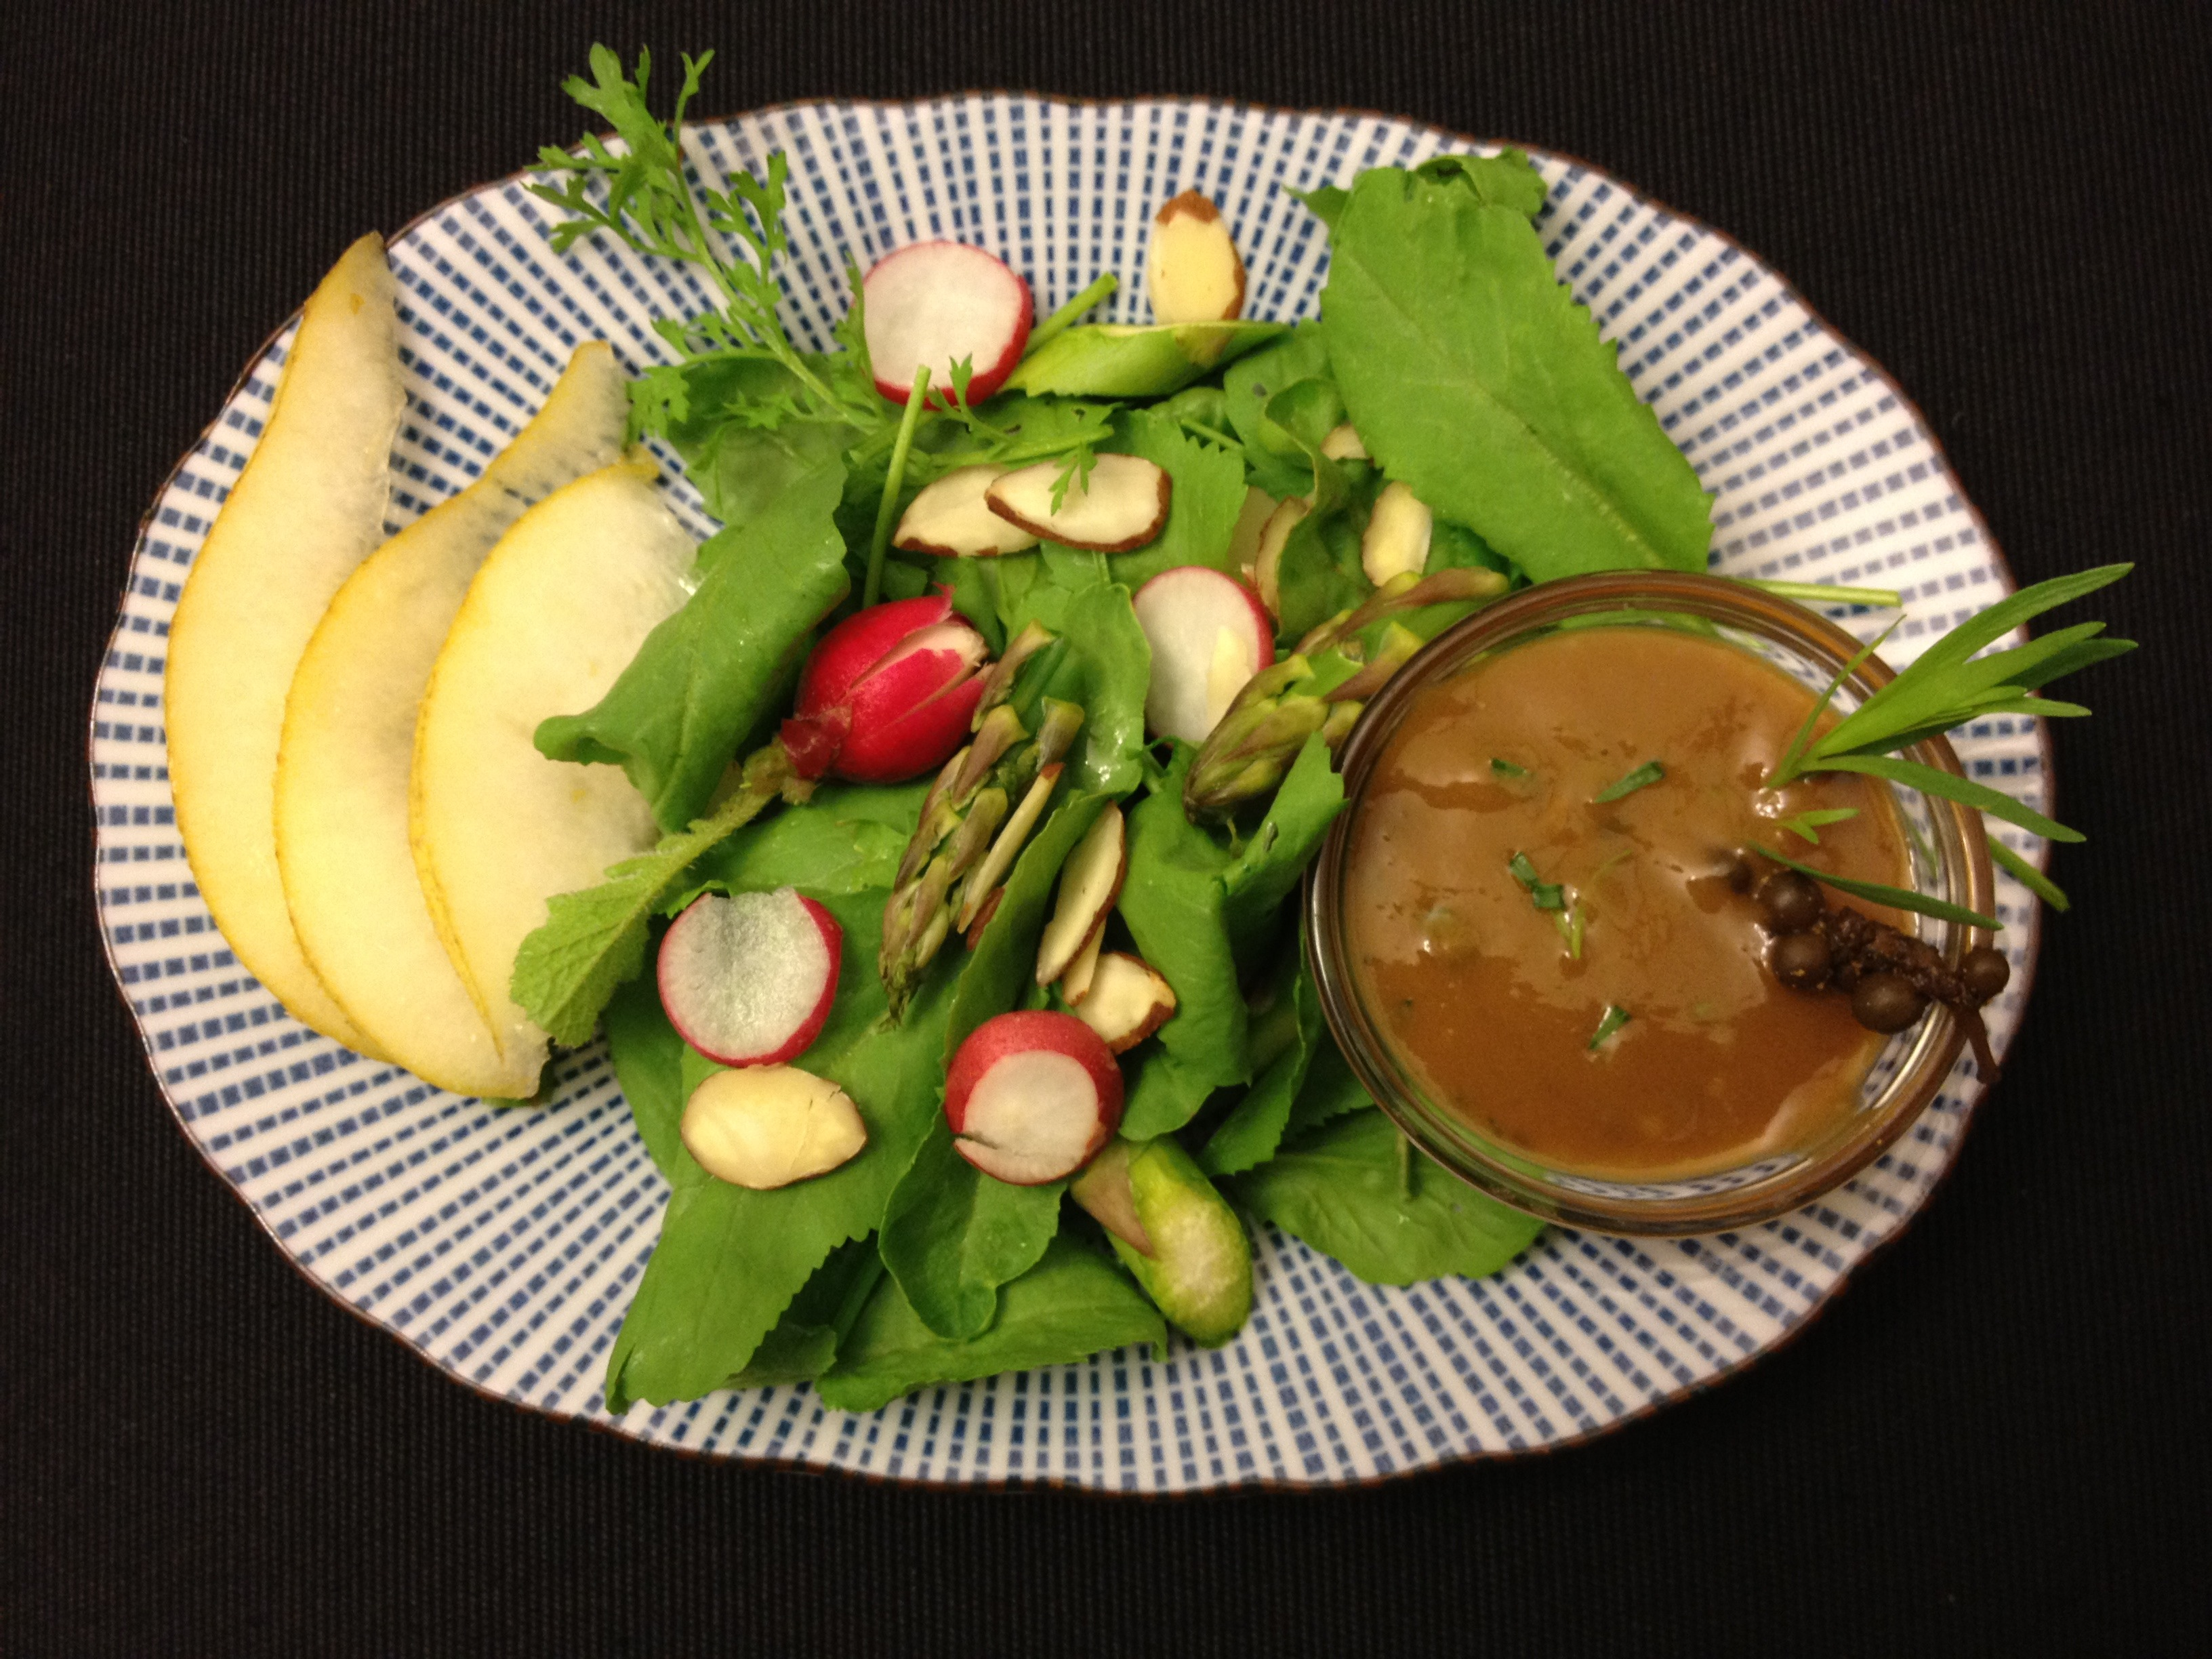 Mango Tarragon Vinaigrette with Pickled Green Peppercorns